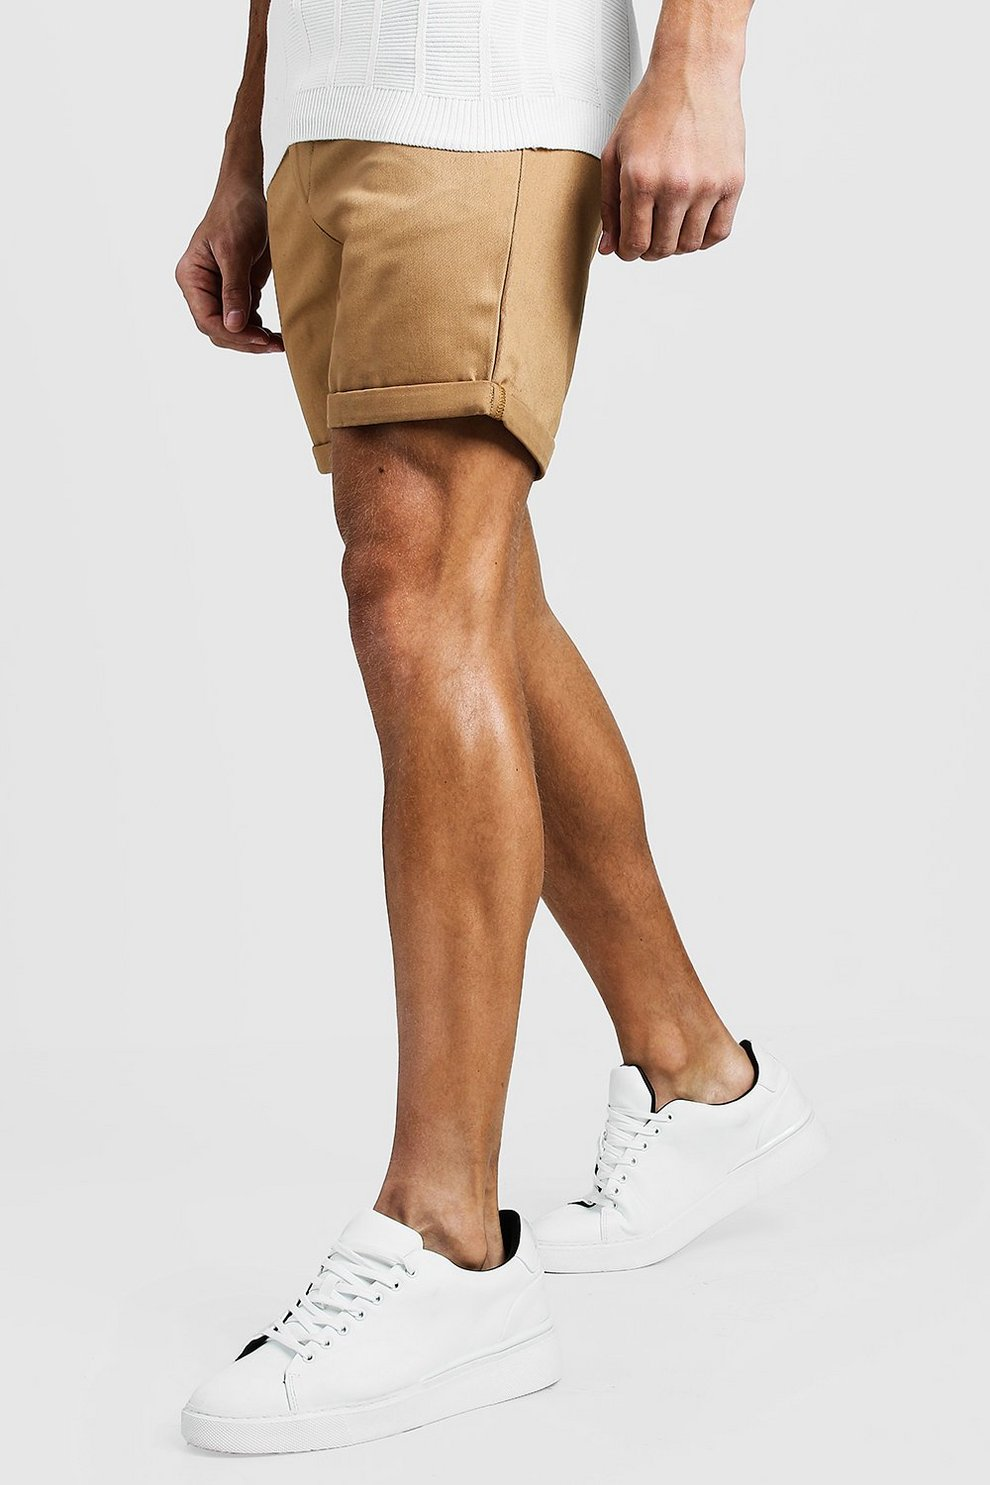 Where Can I Order Cheap Sale 2018 New Boohoo Mid Length Slim Fit Chino Short In Buy Cheap Huge Surprise wXhphV1